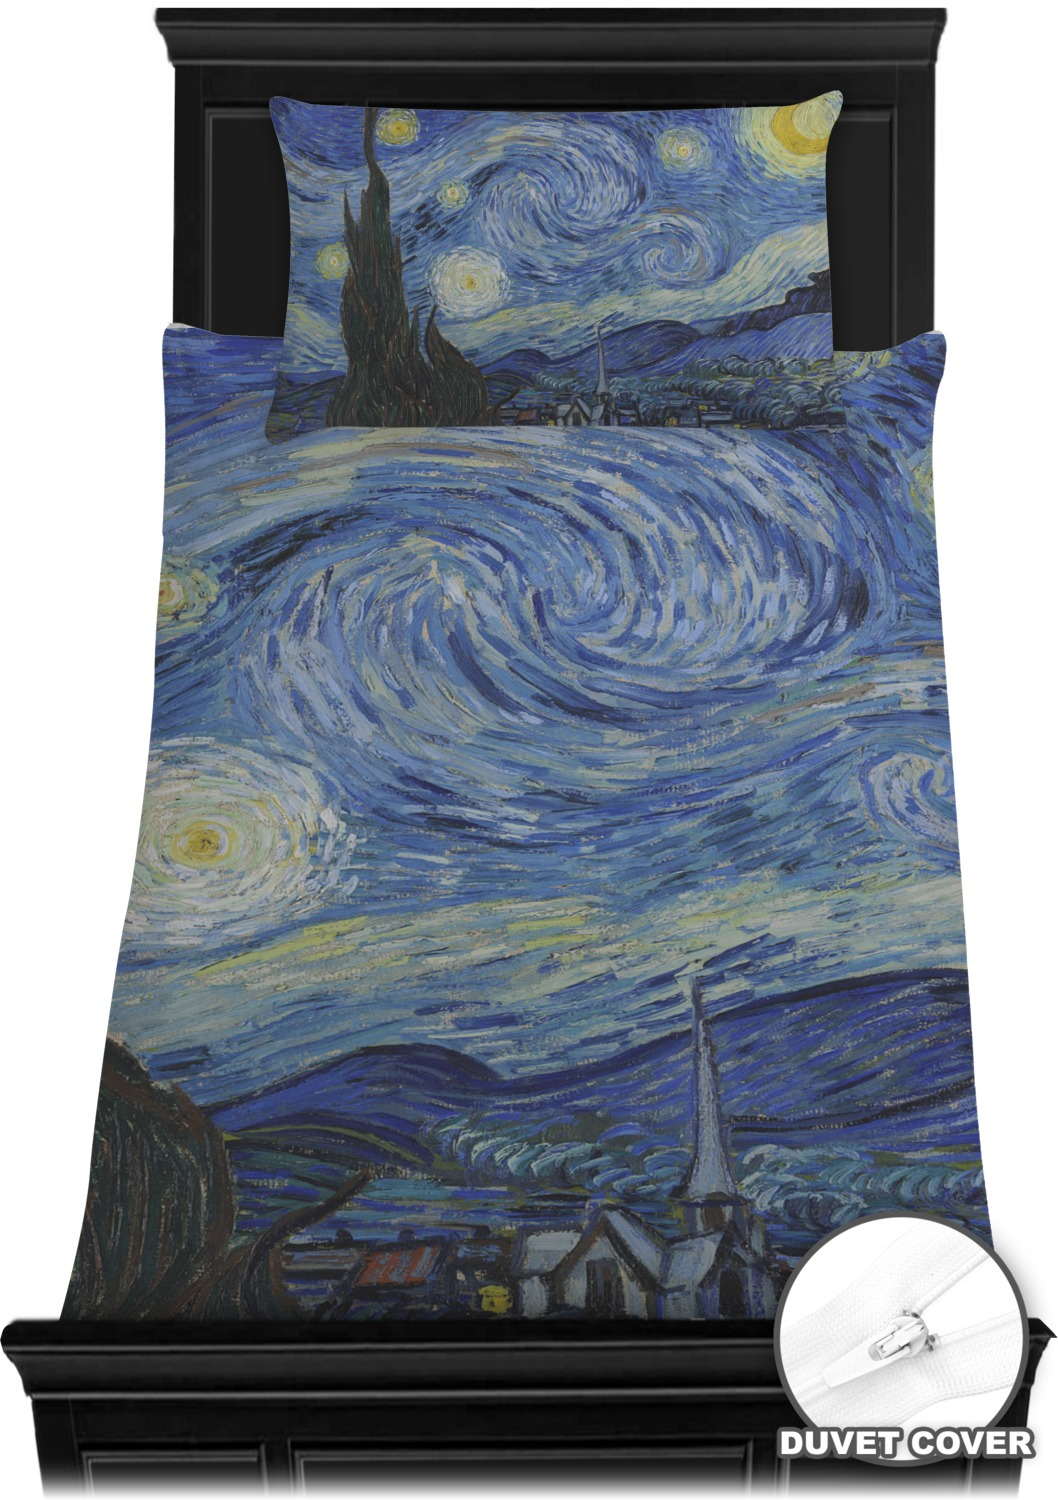 the starry night van gogh 1889 duvet cover set you customize it